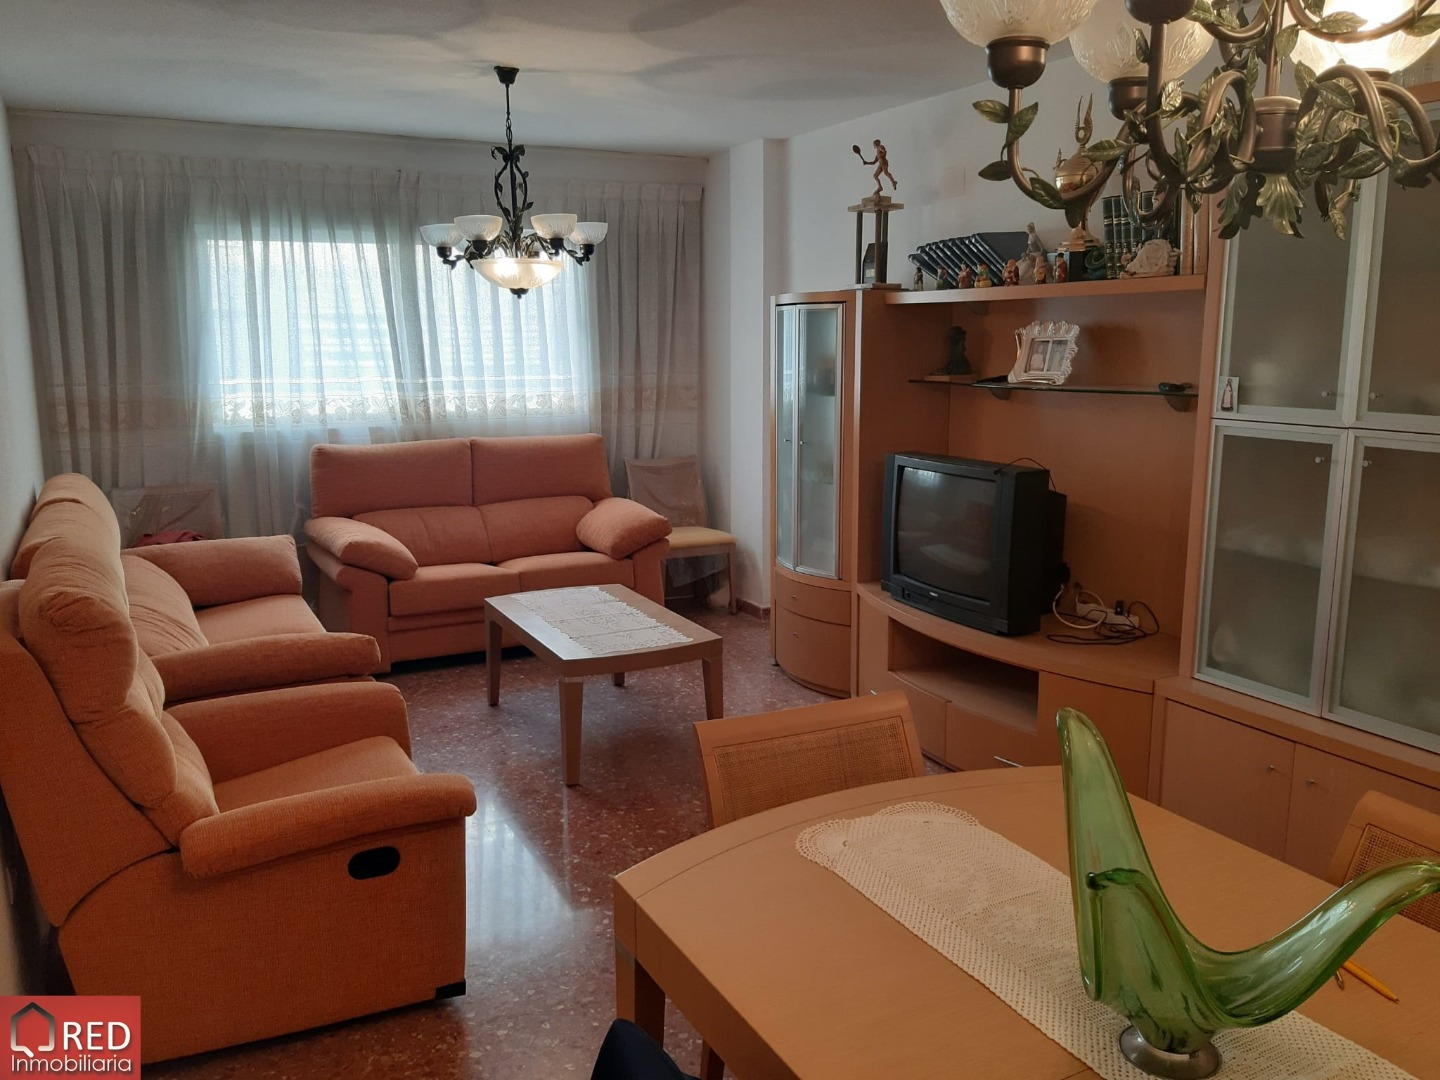 Location Appartement  Calle libertad